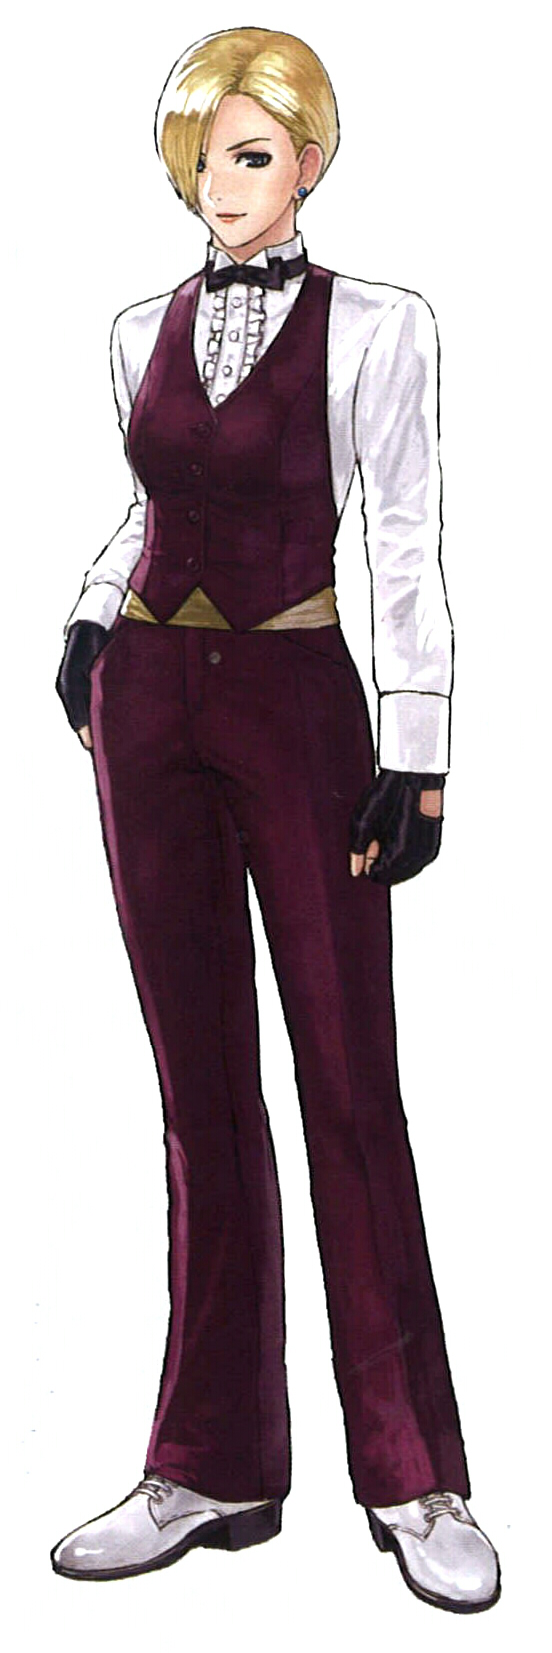 Character Design King Of Fighters : King snk wiki fandom powered by wikia